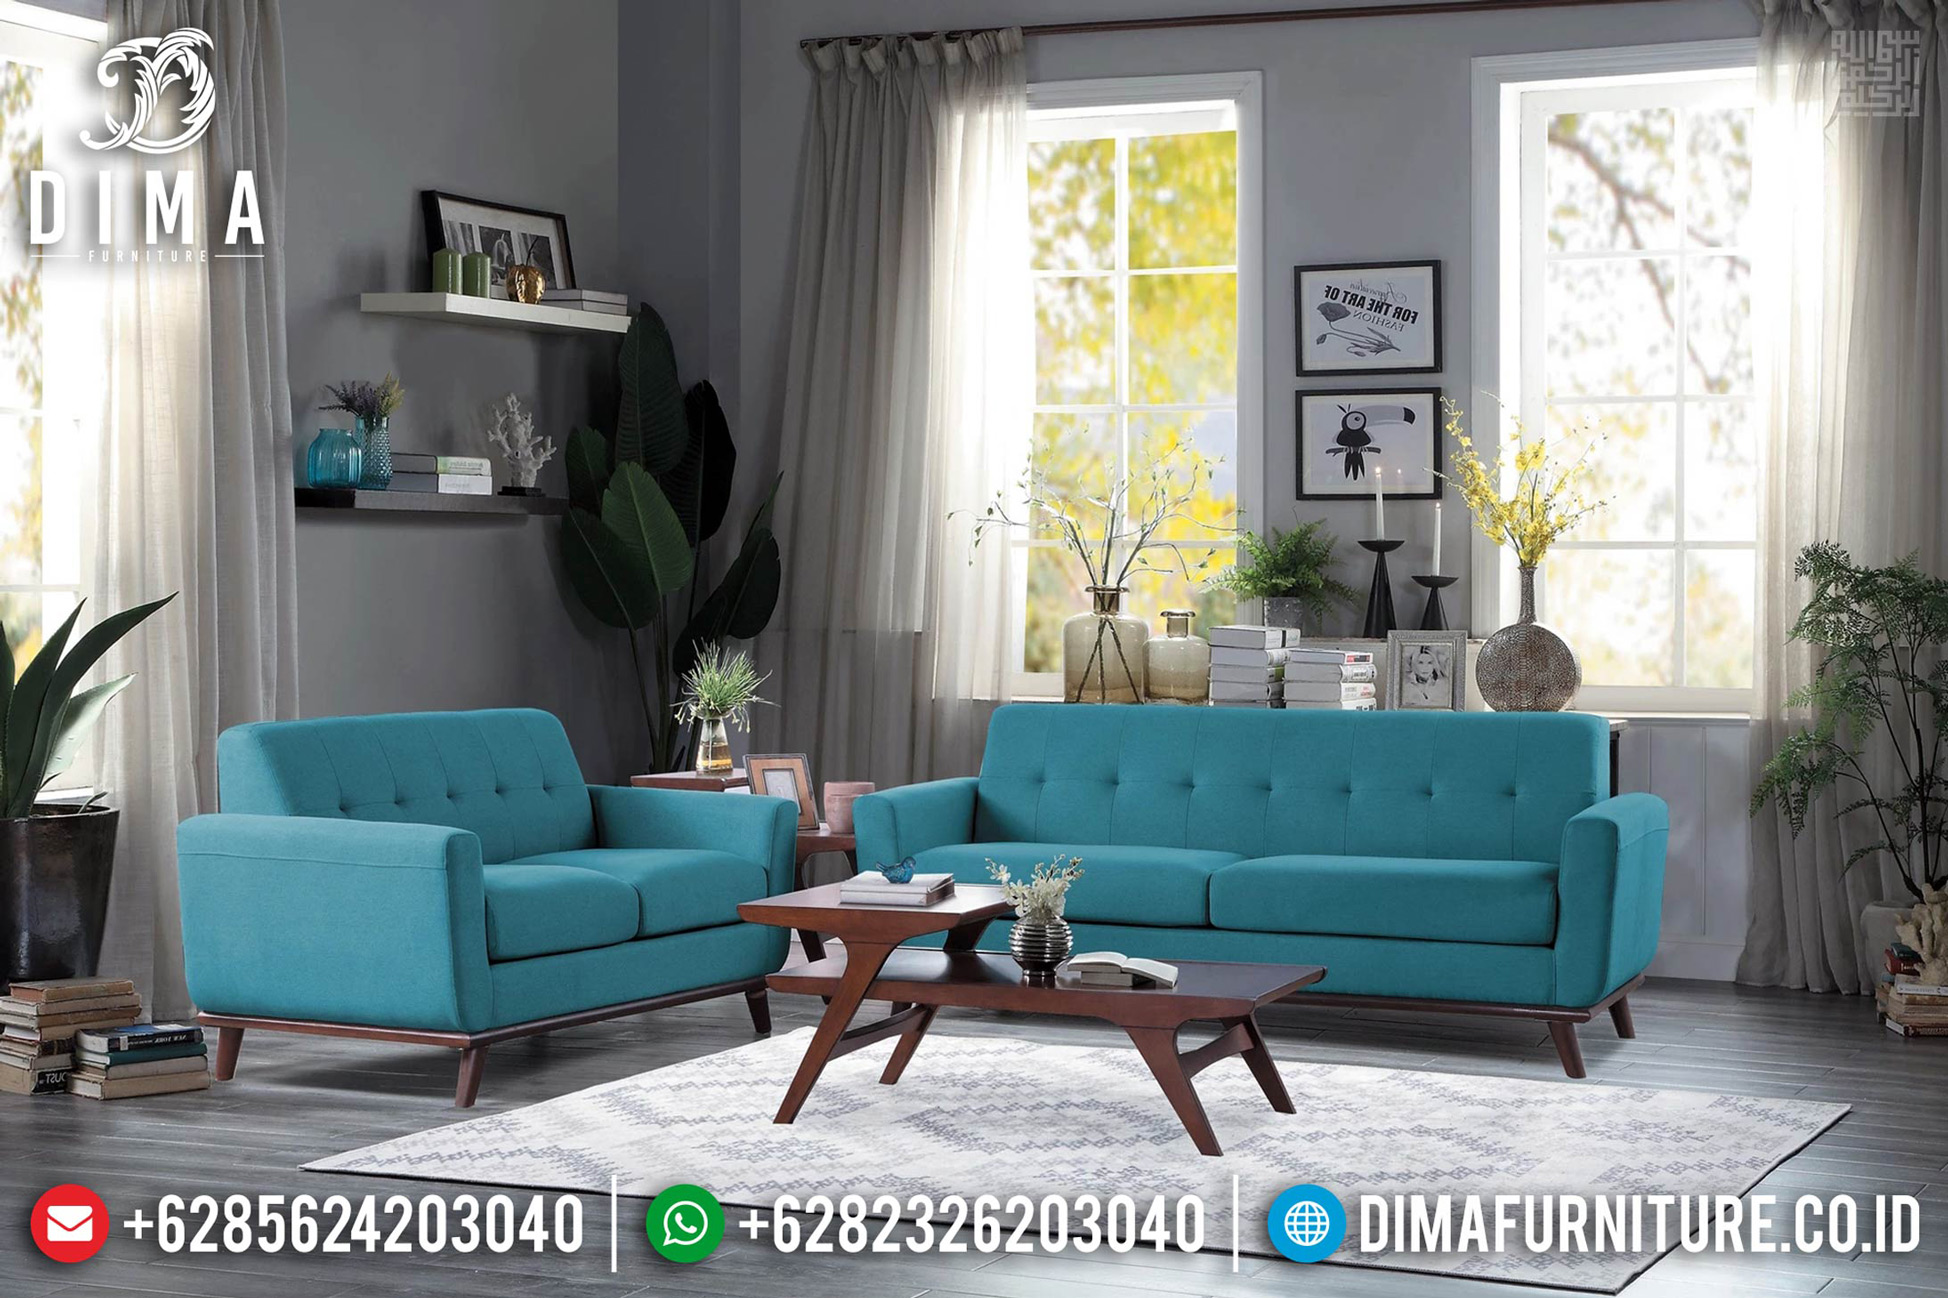 Sofa Tamu Minimalis Klasik Jati Natural Perhutani New Design Interior TTJ-0637